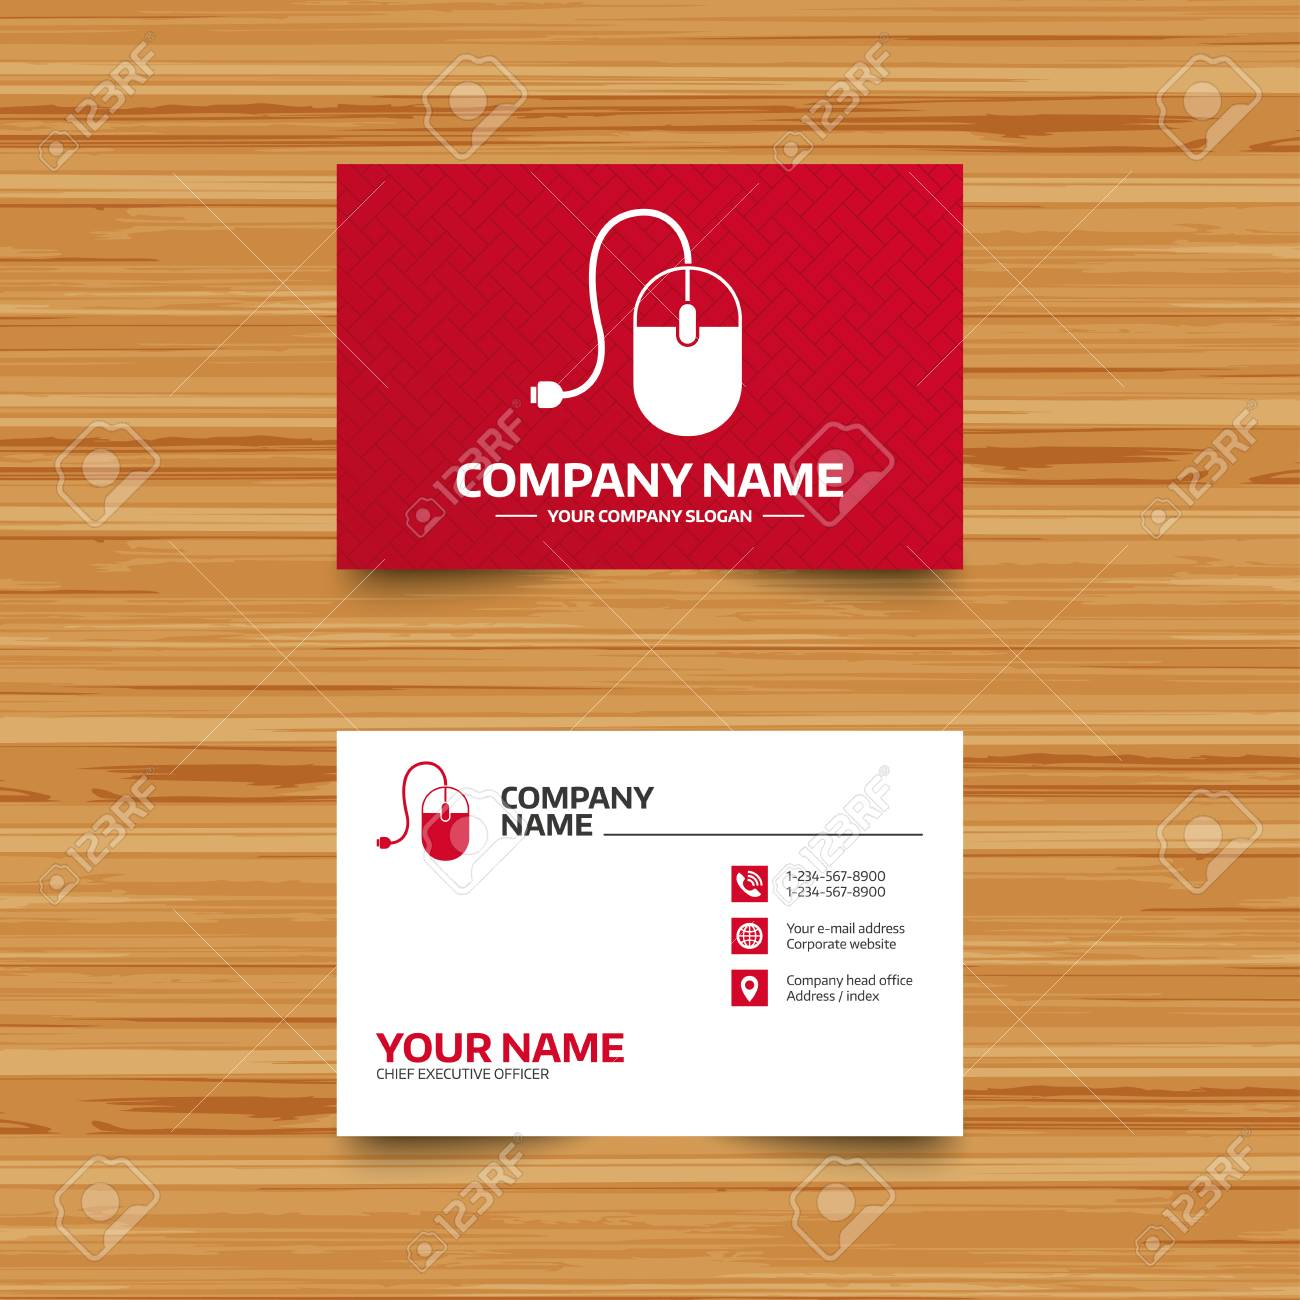 Business card template computer mouse sign icon optical with business card template computer mouse sign icon optical with wheel symbol phone fbccfo Image collections